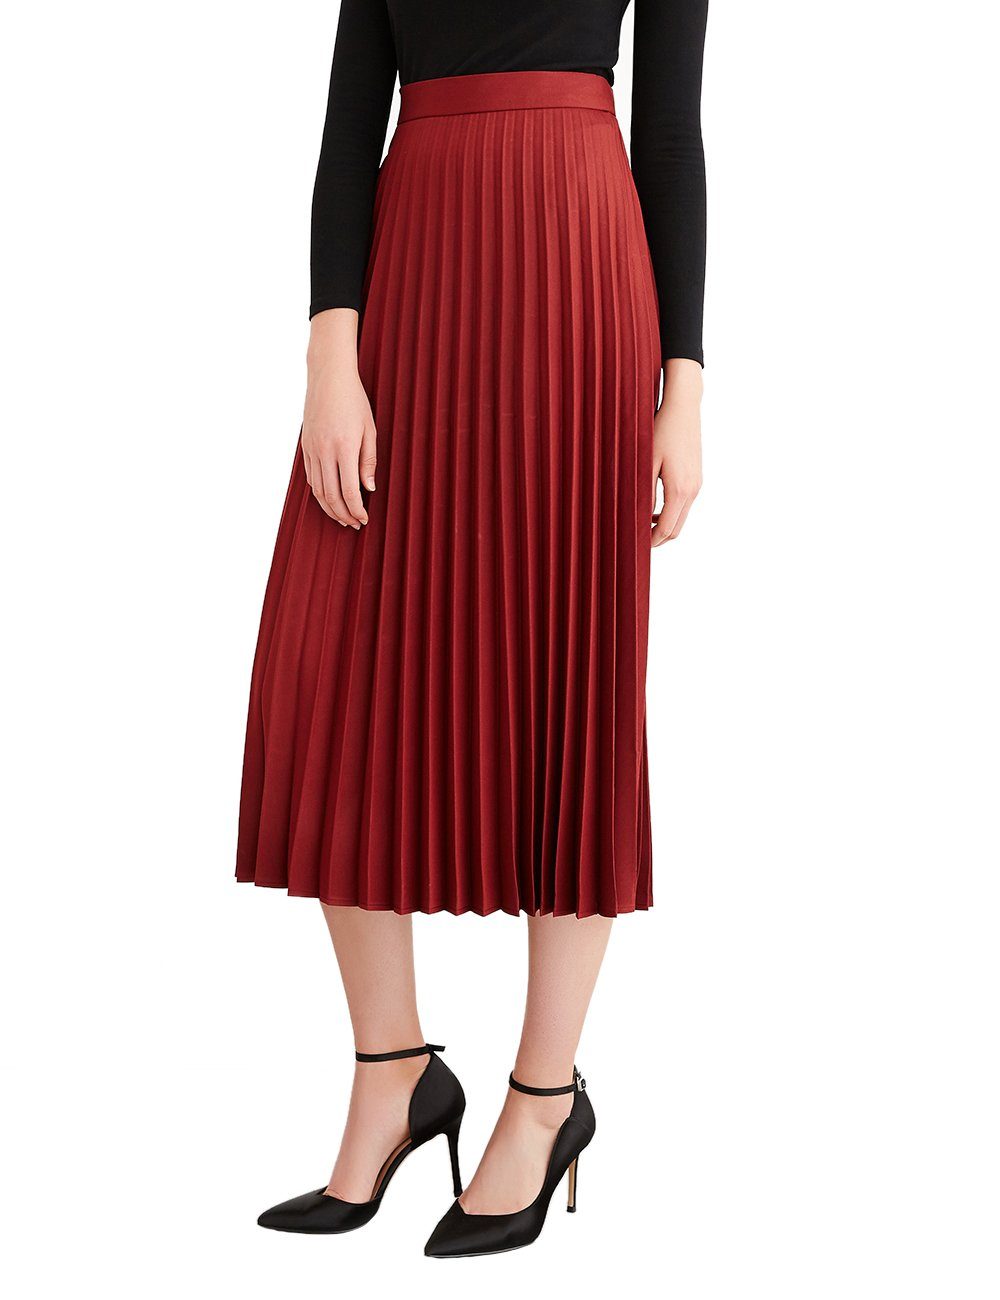 1930s Style Skirts : Midi Skirts, Tea Length, Pleated Simple Retro Womens High Waist Basic Pleated A-line Midi Skirt $24.99 AT vintagedancer.com